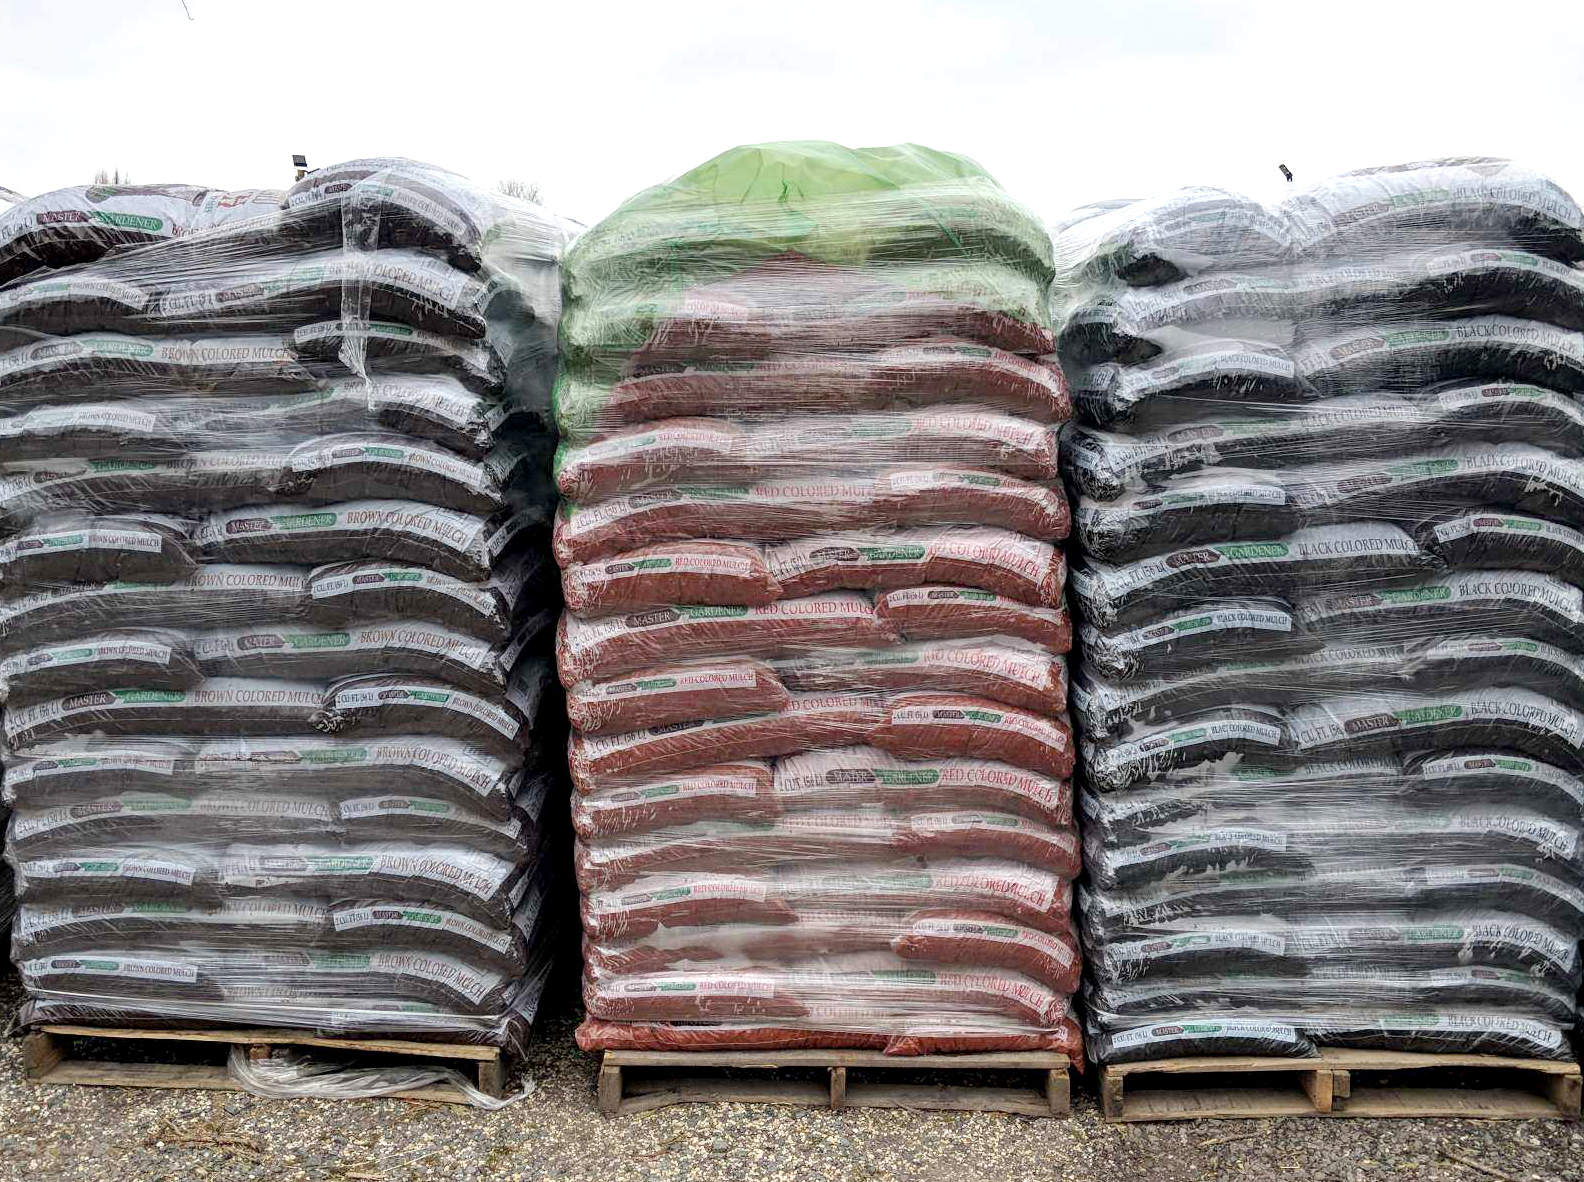 Mulch-Reston-Farm-Market-02.JPG